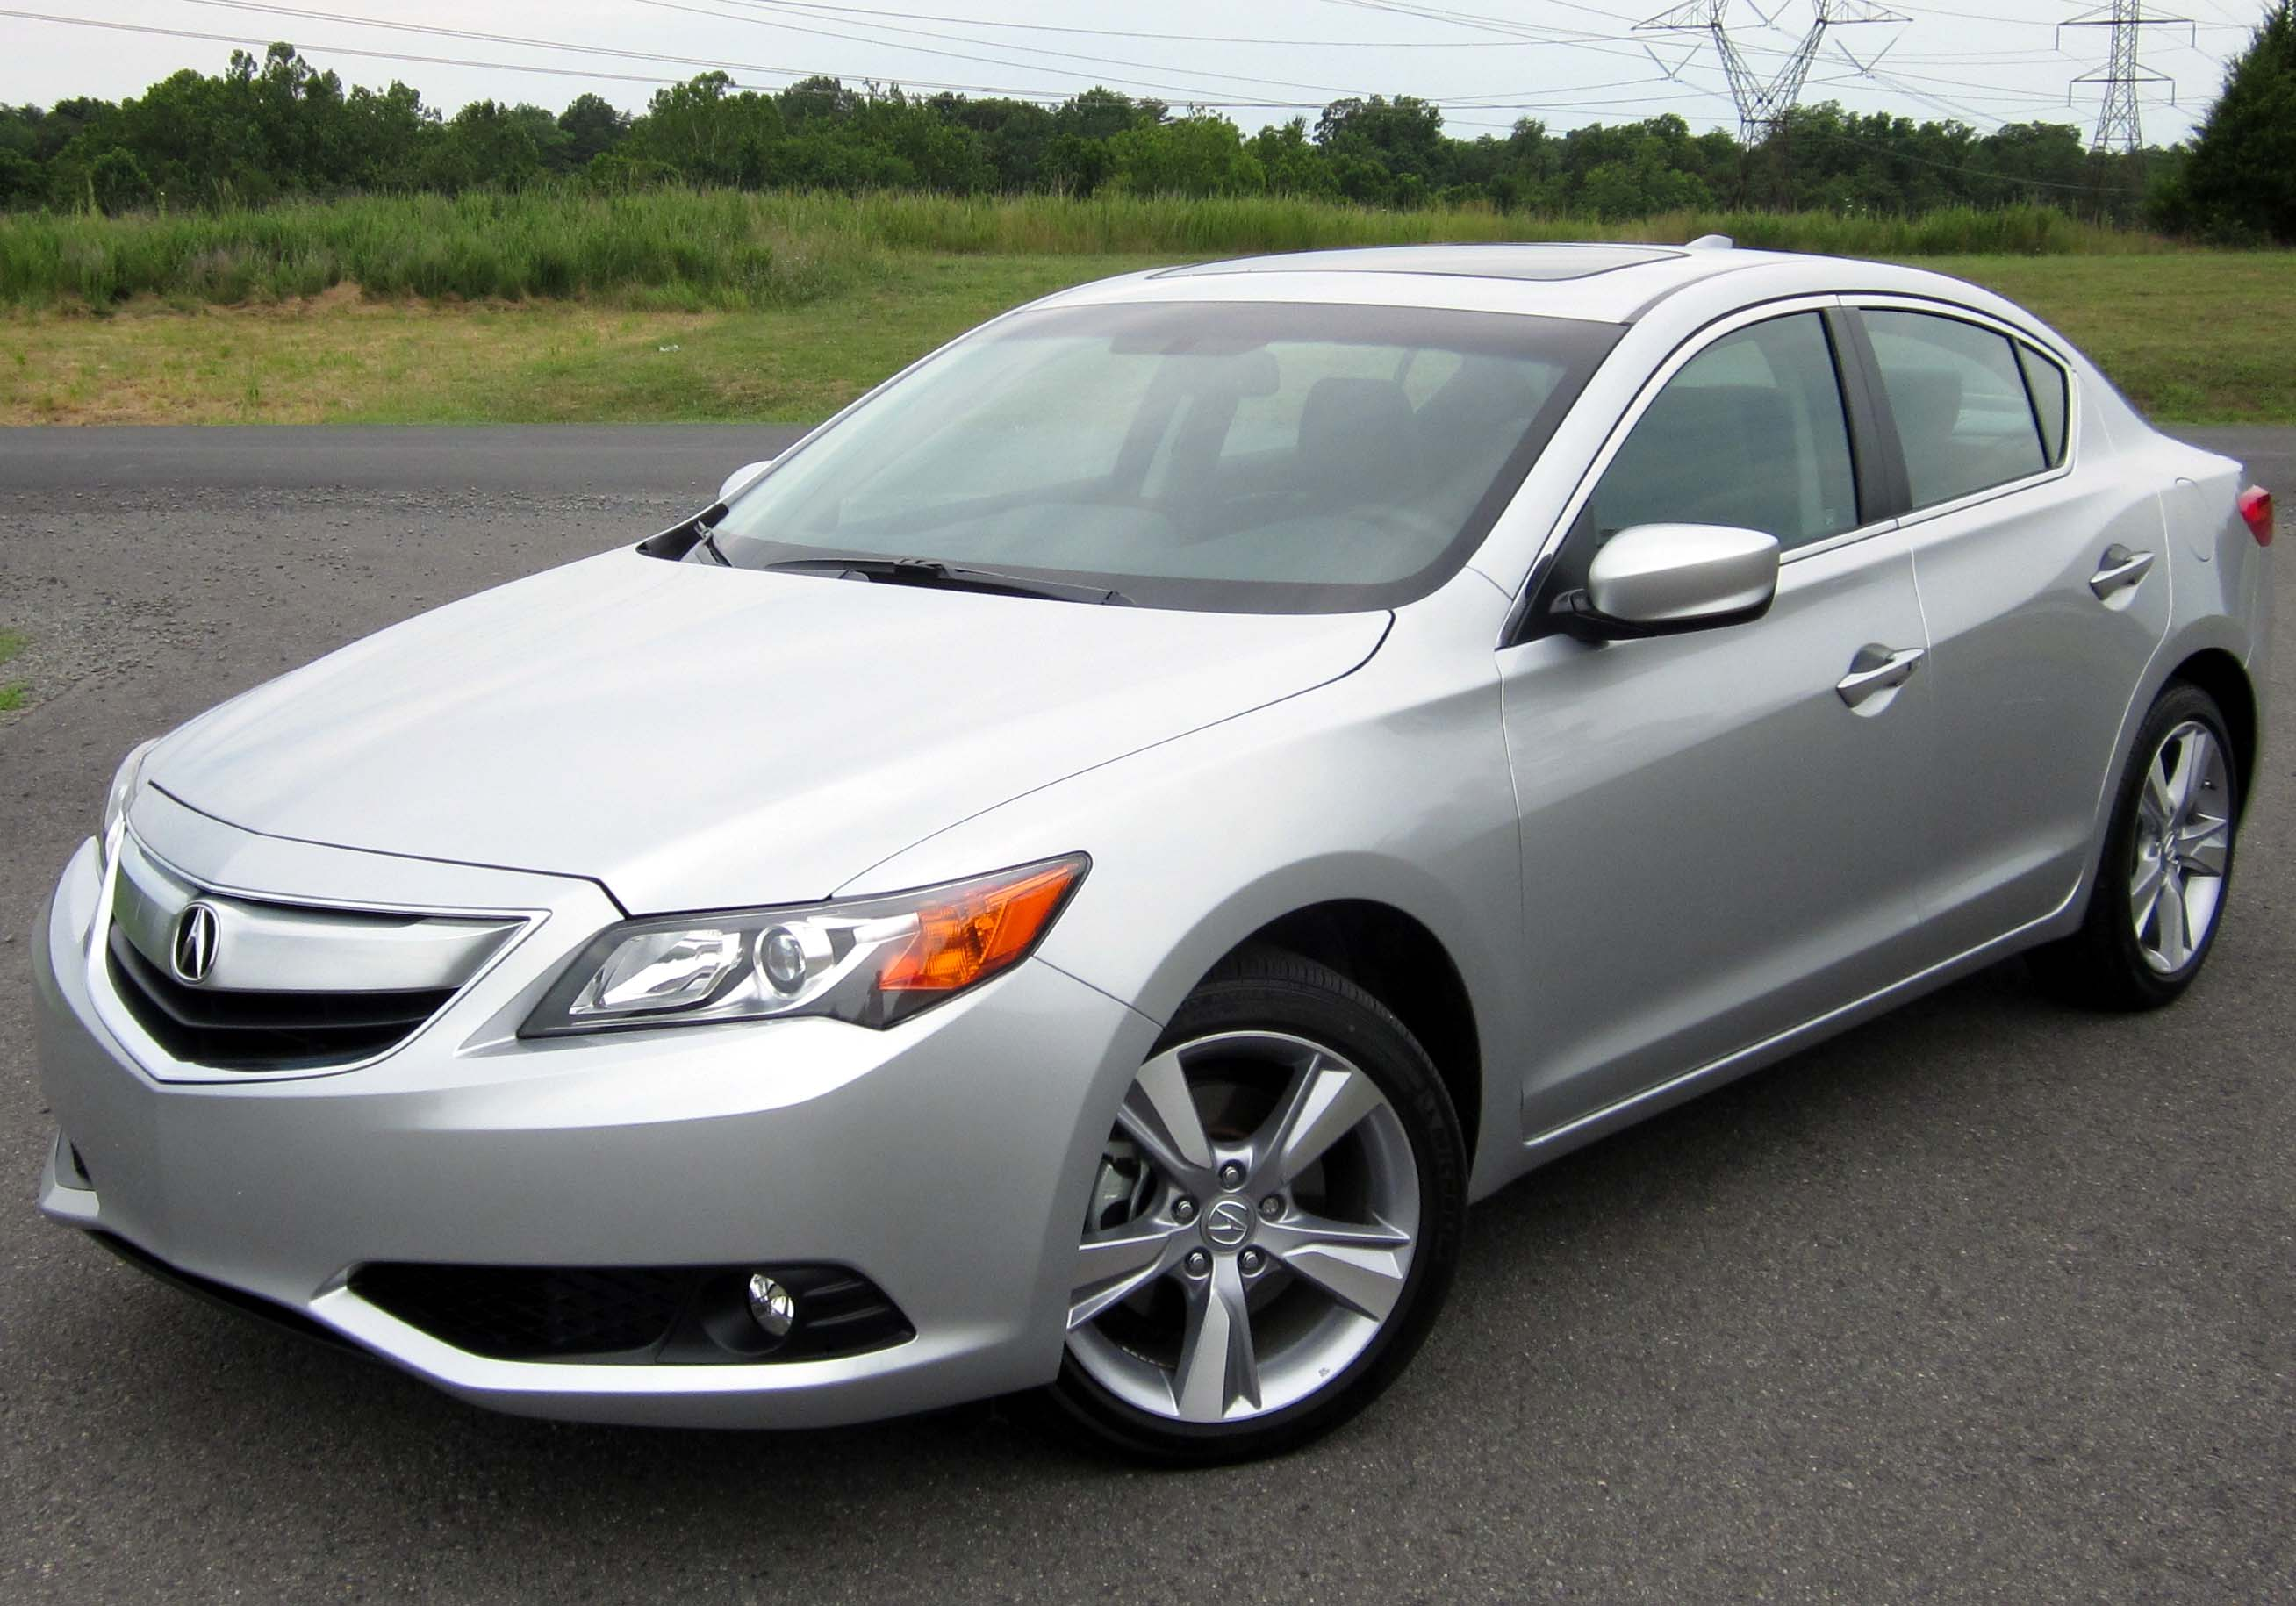 Acura's ILX Wallpaper HD For Mobile